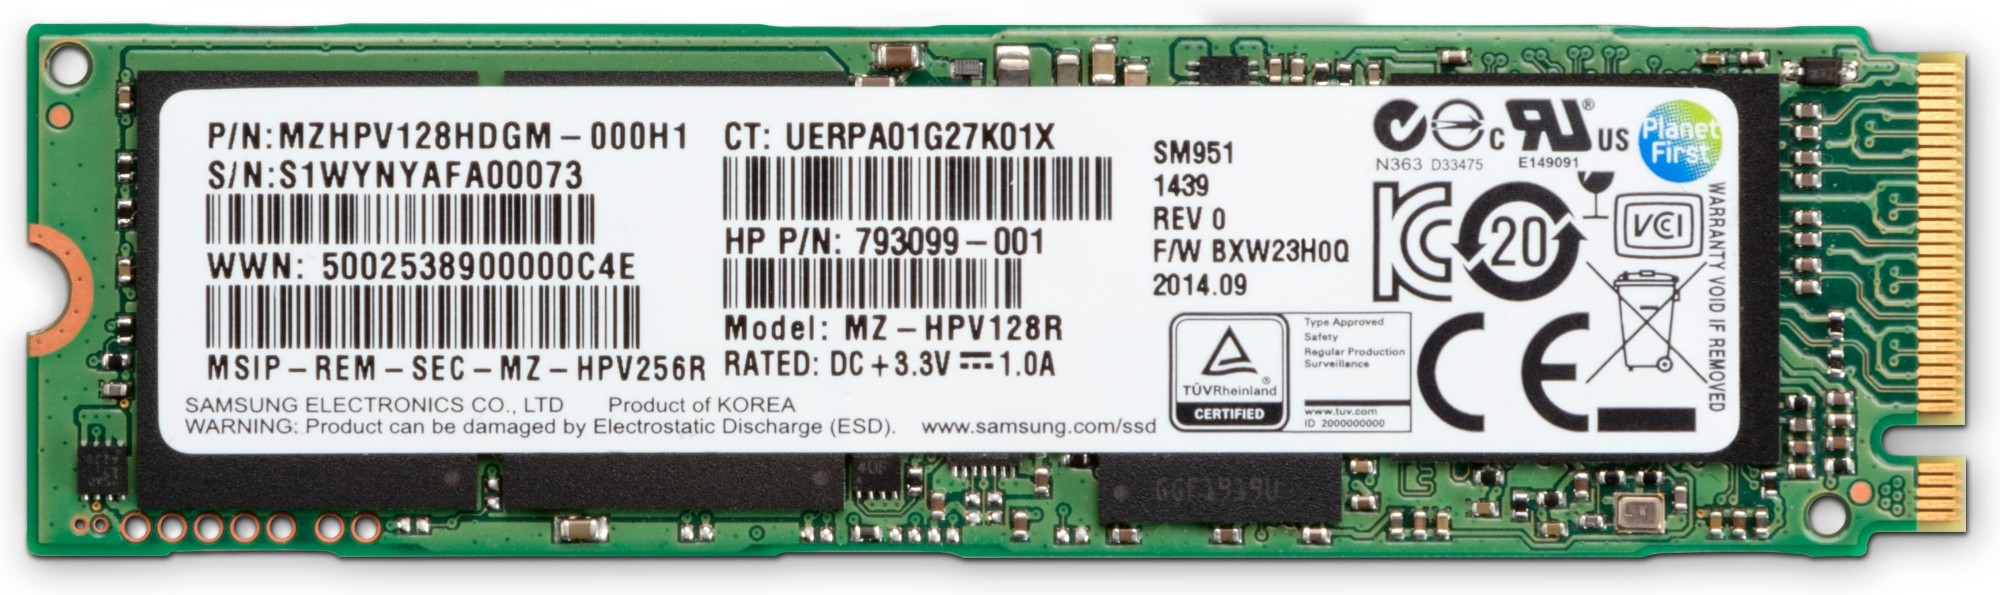 HP 1PD51AA Z TURBO DRIVE 512GB MLC (Z8G4) SSD MODULE